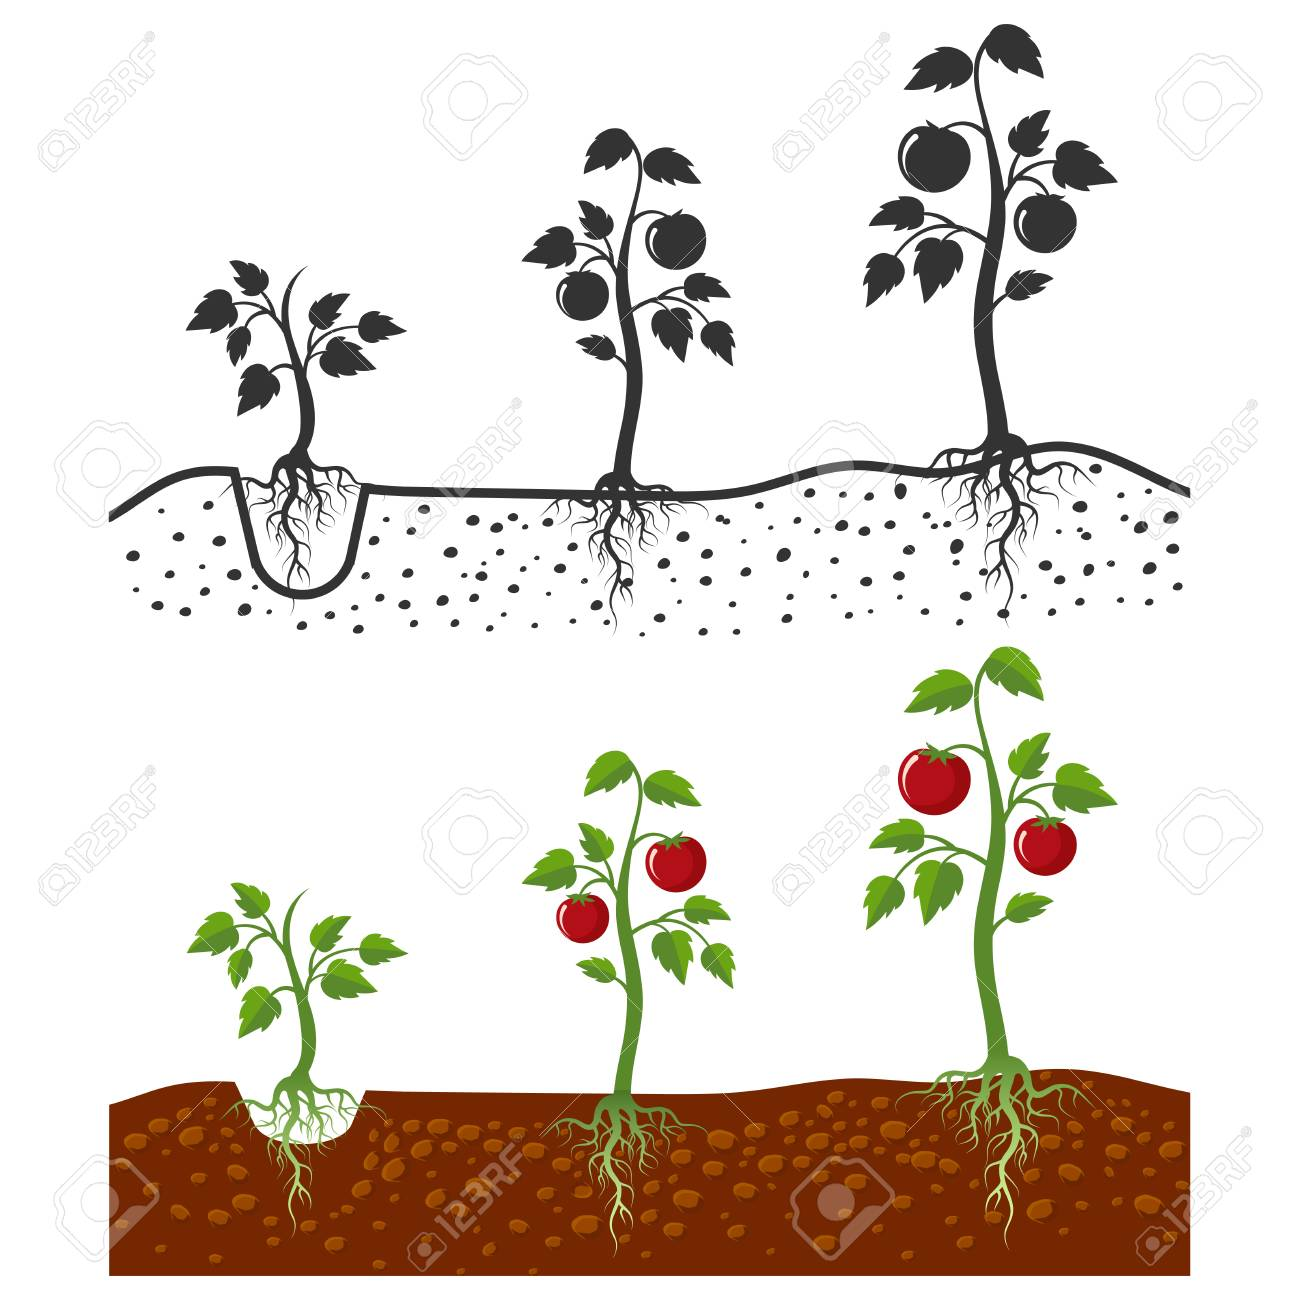 Tomato plant with roots vector growing stages - cartoon style and silhouettes of tomatoes isolated on white background. Vegetable tomato growing, agriculture sprout illustration - 111589126